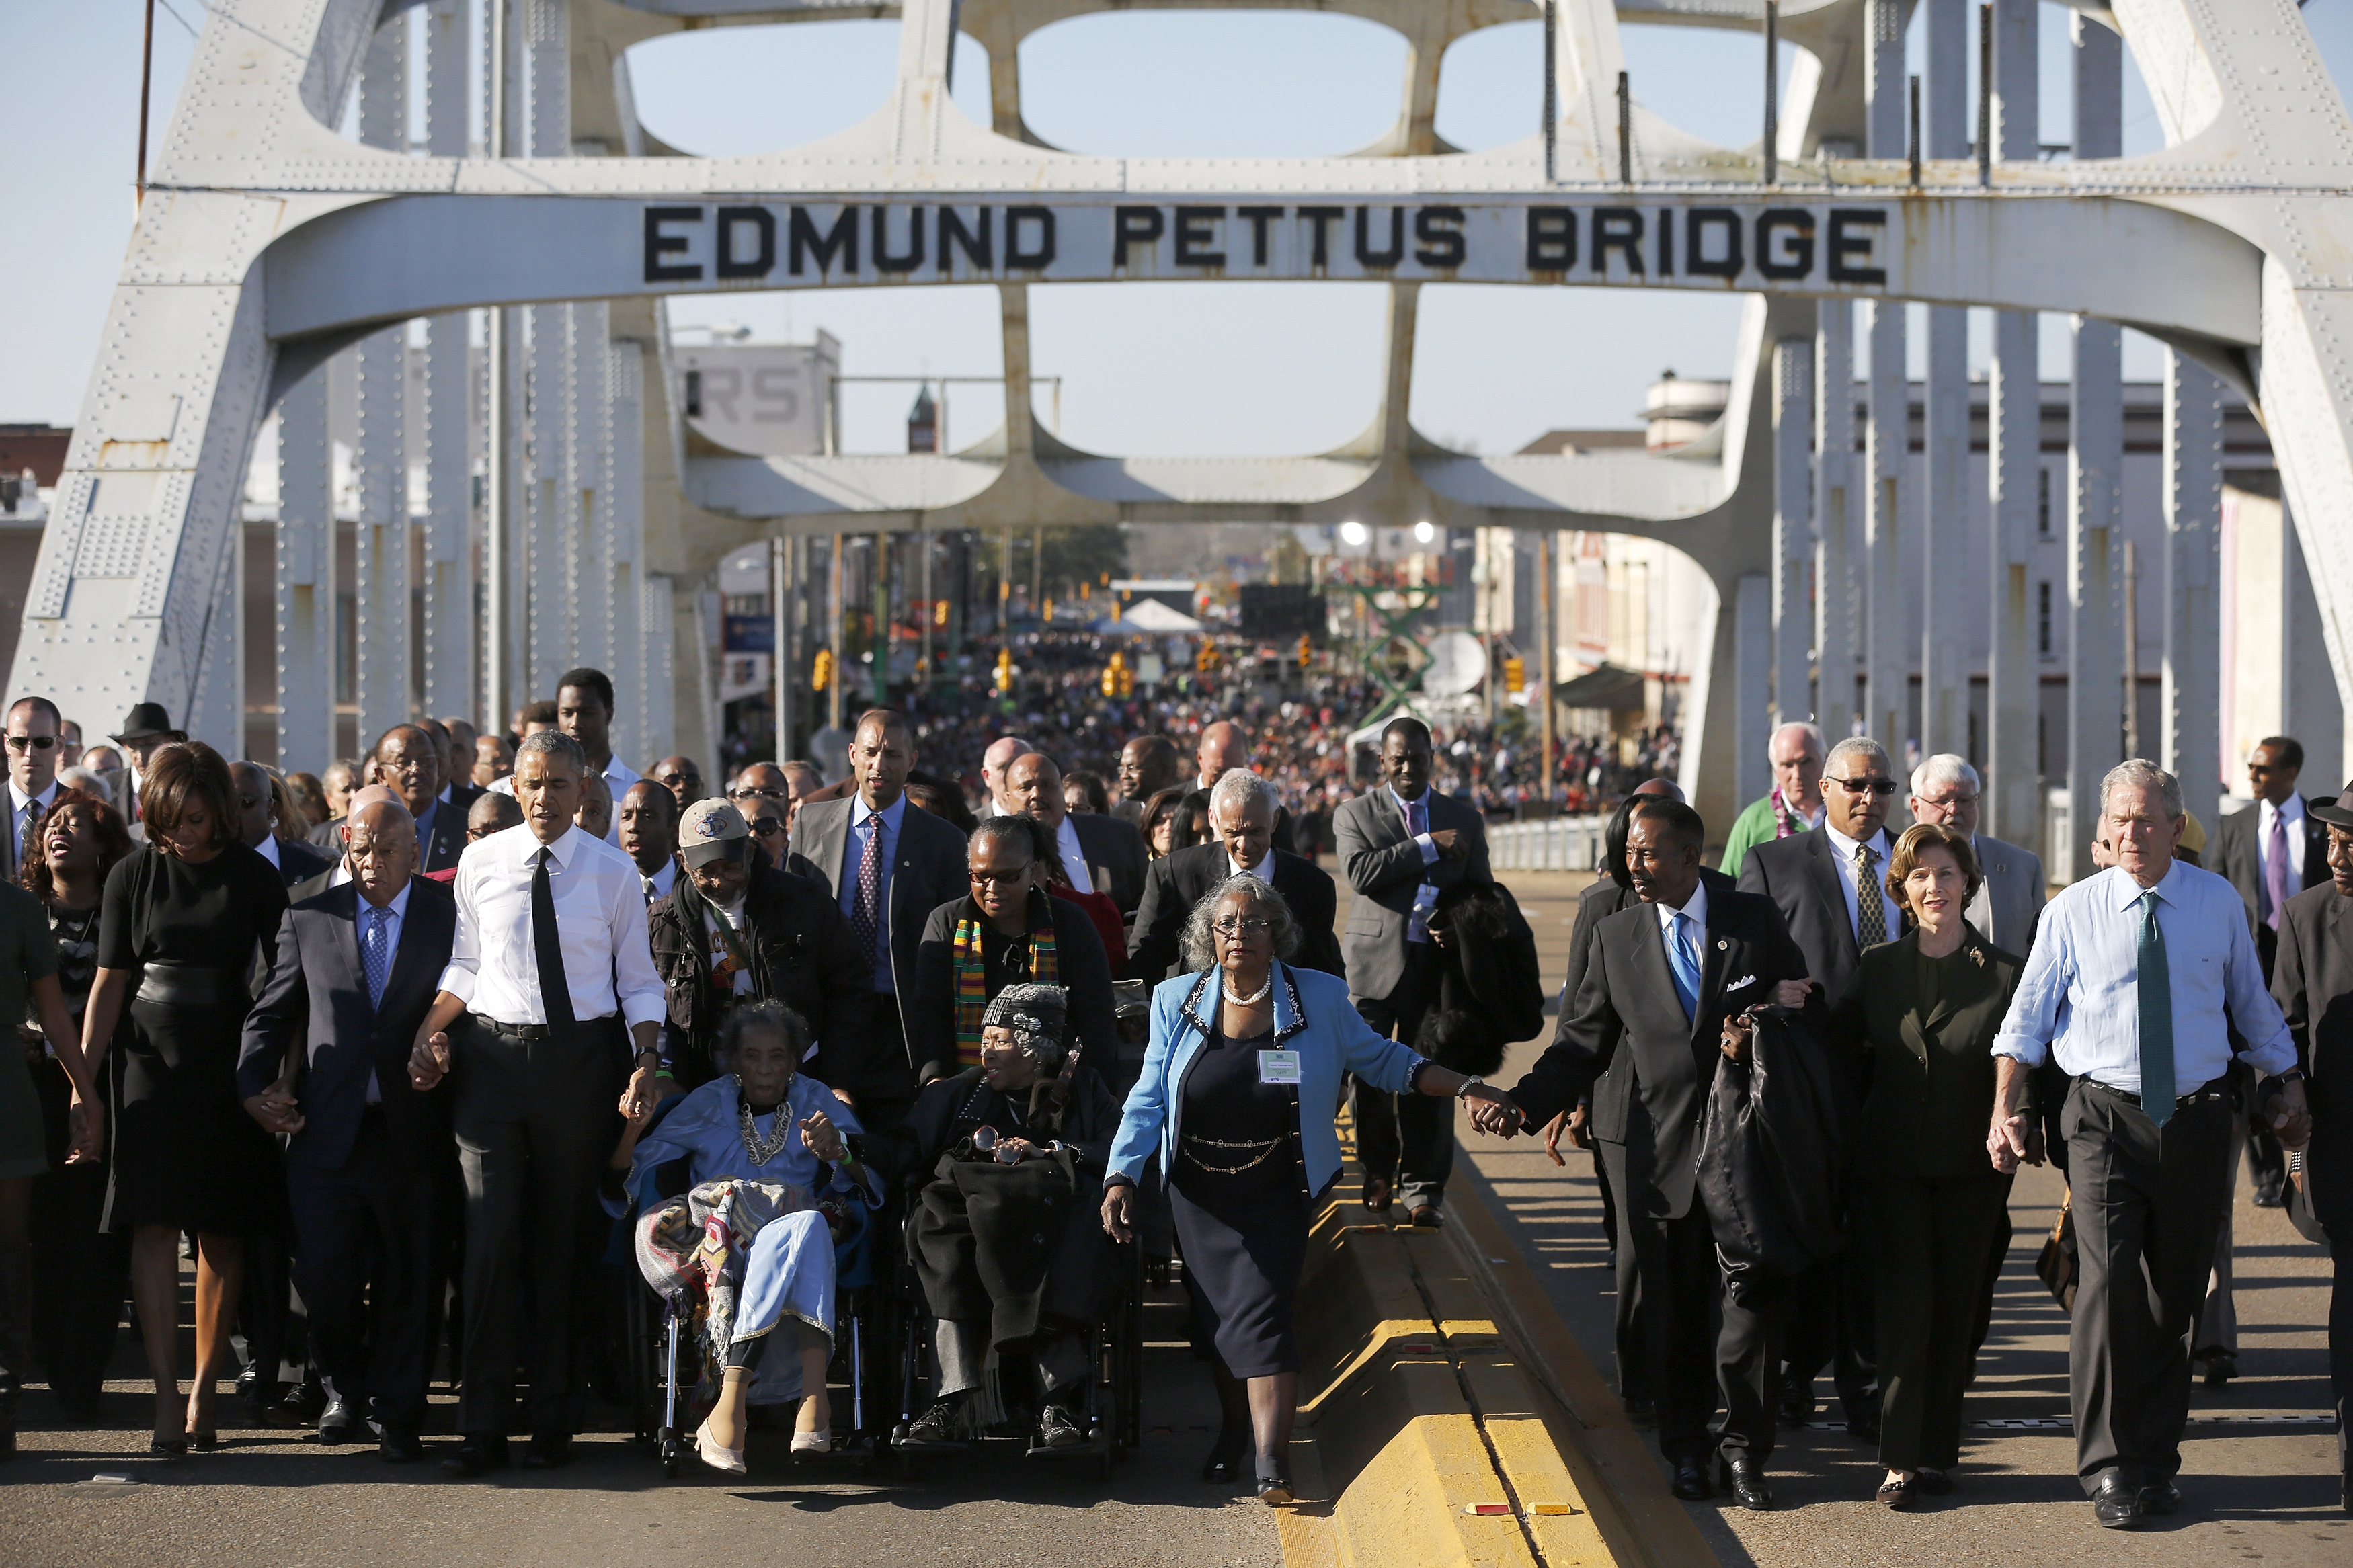 U.S. President Barack Obama (3rd L) participates in a march across the Edmund Pettus Bridge in Selma, Alabama, March 7, 2015. Also pictured are first lady Michelle Obama (L), U.S. Representative John Lewis (D-GA) (2nd L), former first lady Laura Bush (2nd R) and former president George W. Bush (R). The event comes on the 50th anniversary of the 'Bloody Sunday' march at the bridge, where police and state troopers beat and used tear gas against peaceful marchers who were advocating against racial discrimination at the voting booth.  REUTERS/Jonathan Ernst    (UNITED STATES - Tags: POLITICS ANNIVERSARY SOCIETY TPX IMAGES OF THE DAY) - RTR4SGKC